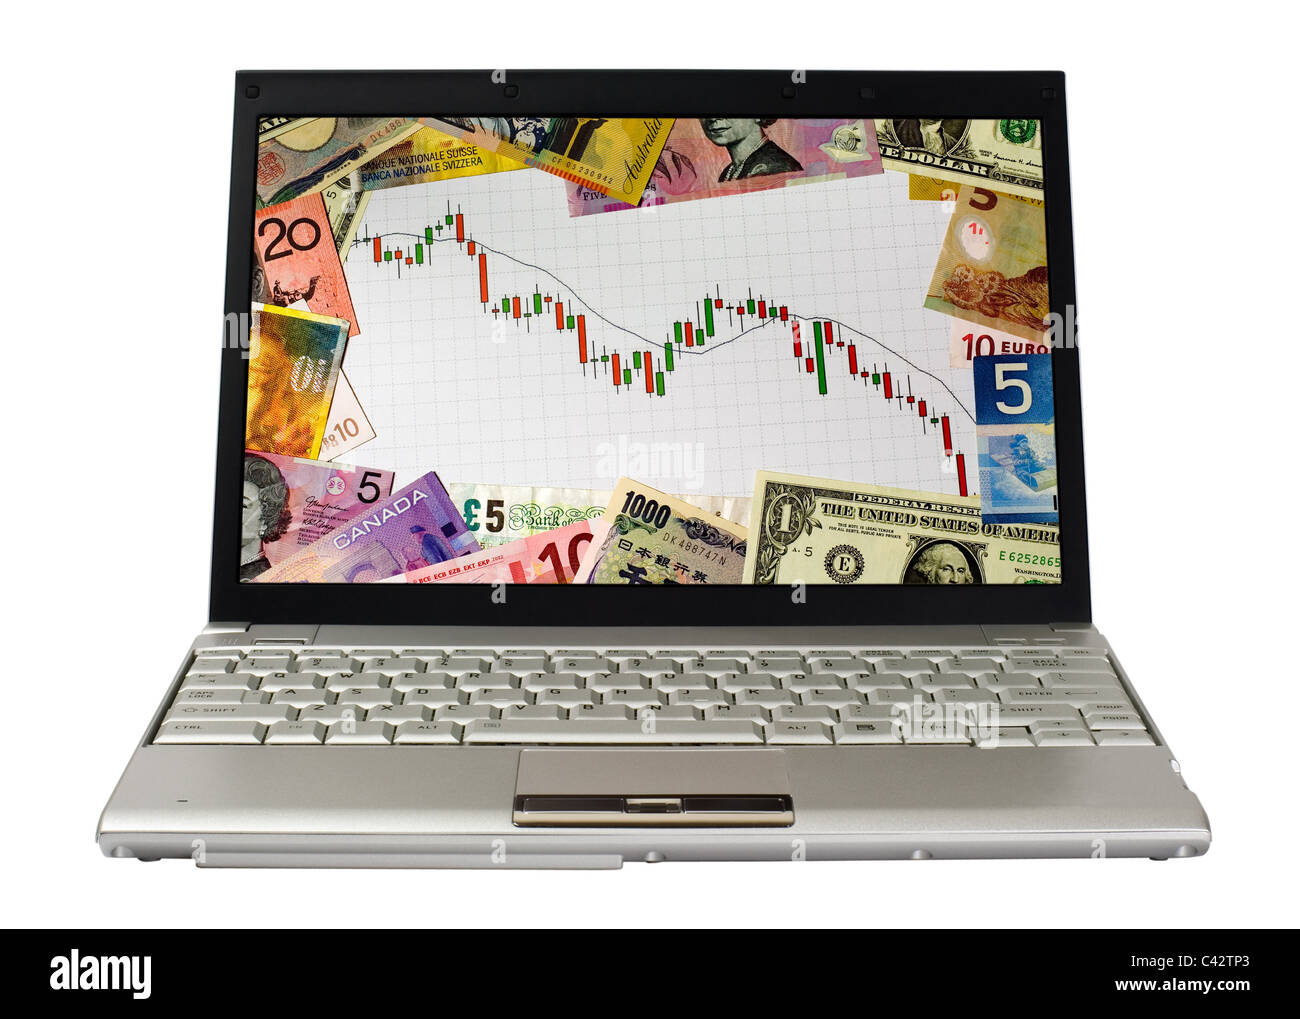 Laptop showing candlestick chart of a bear market surrounded by currencies of various countries - Stock Image